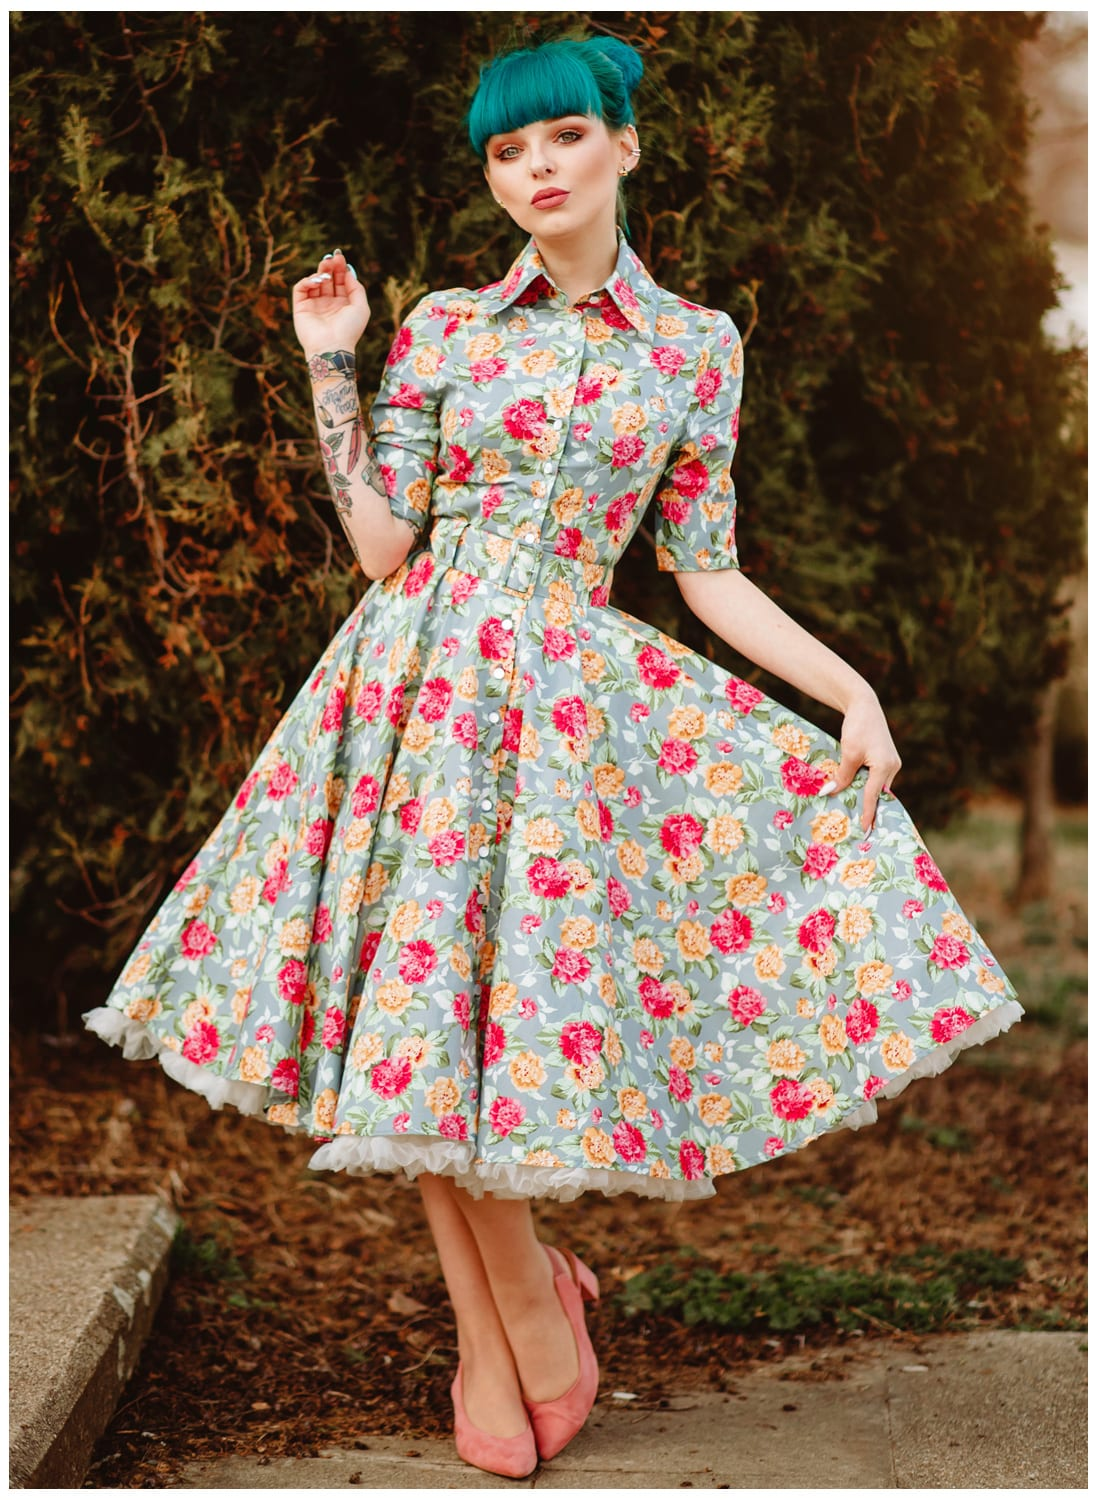 'Way Out West' Garden Floral 50s Swing Dress